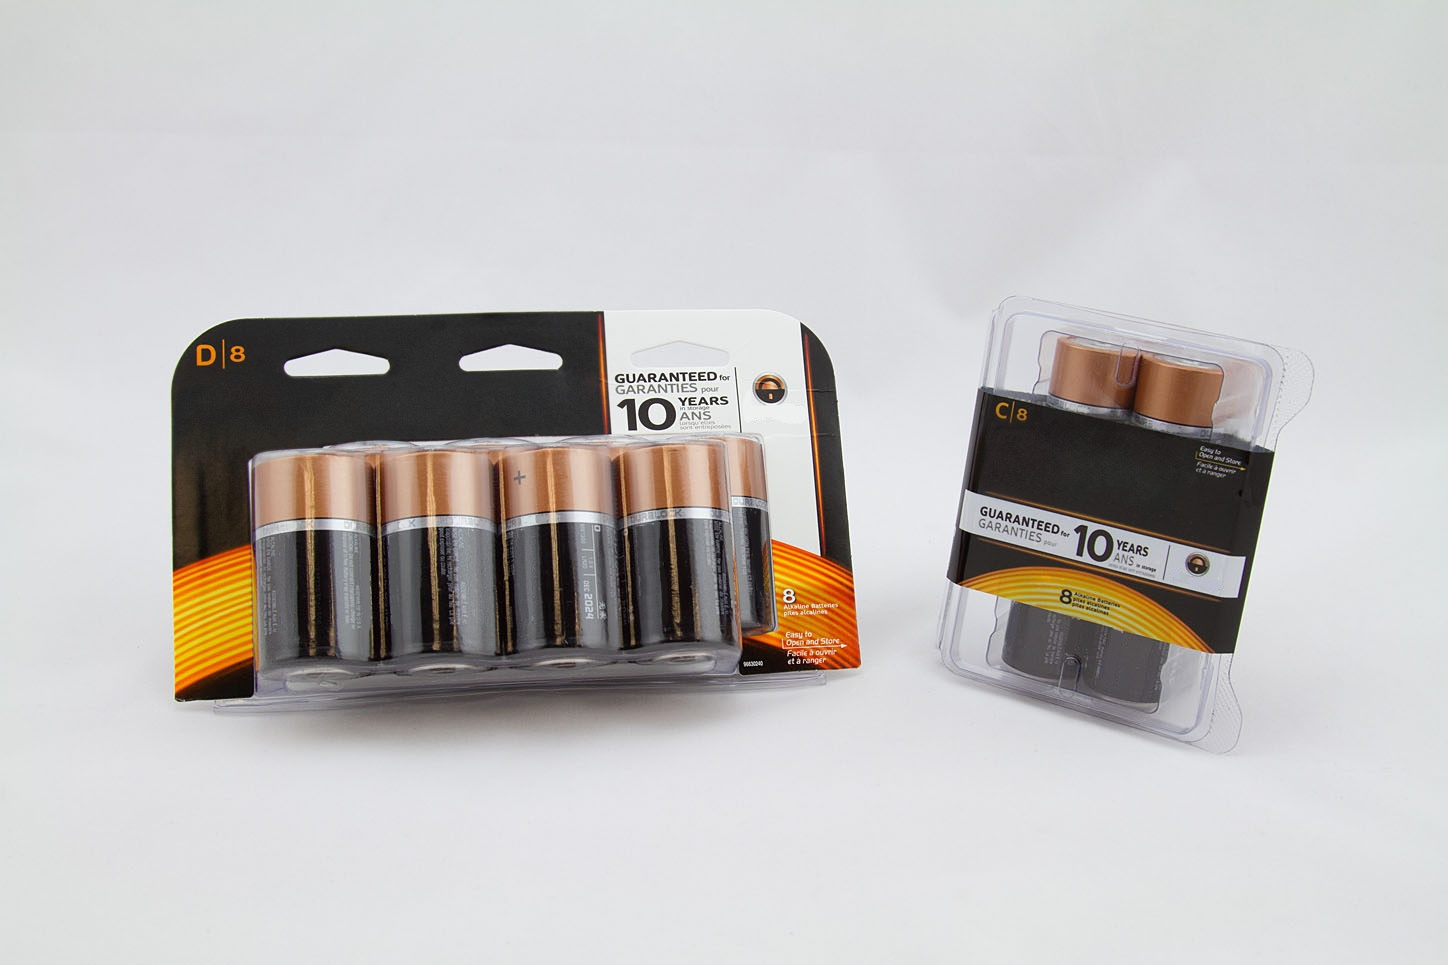 clamshell-packaging-batteries-thermoforming-deufol